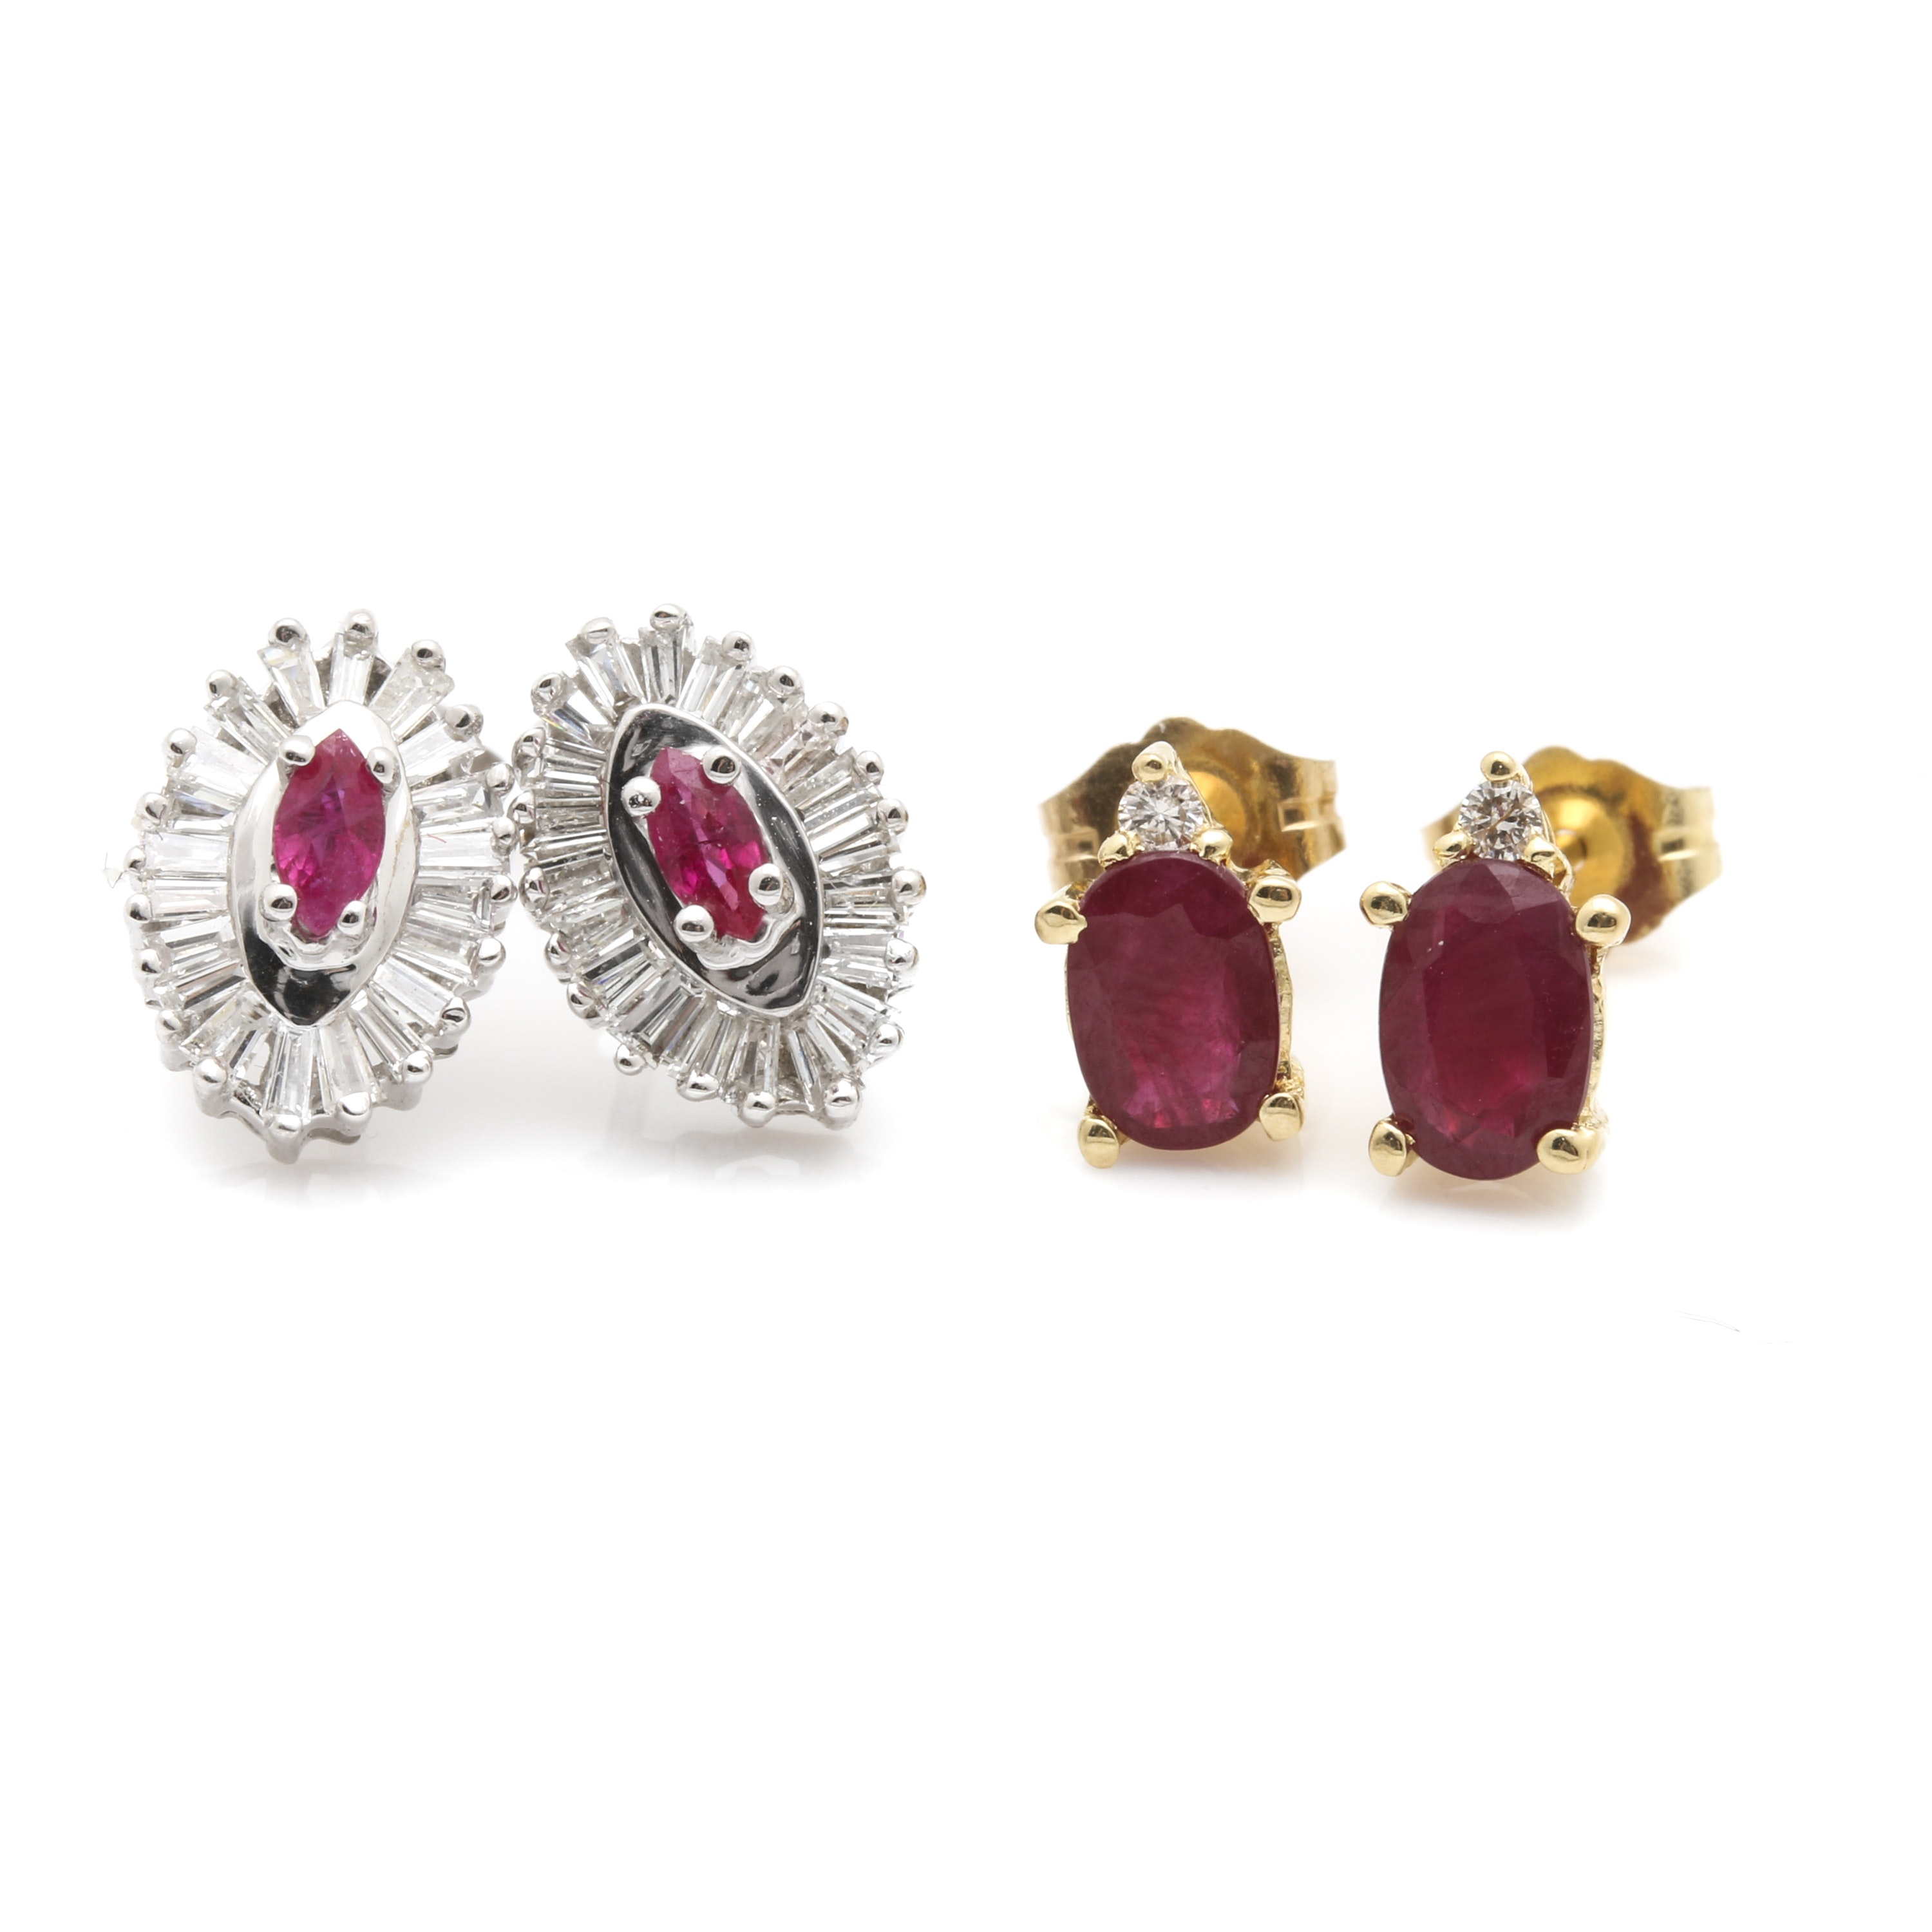 14K Yellow and White Gold Ruby and Diamond Earring Selection